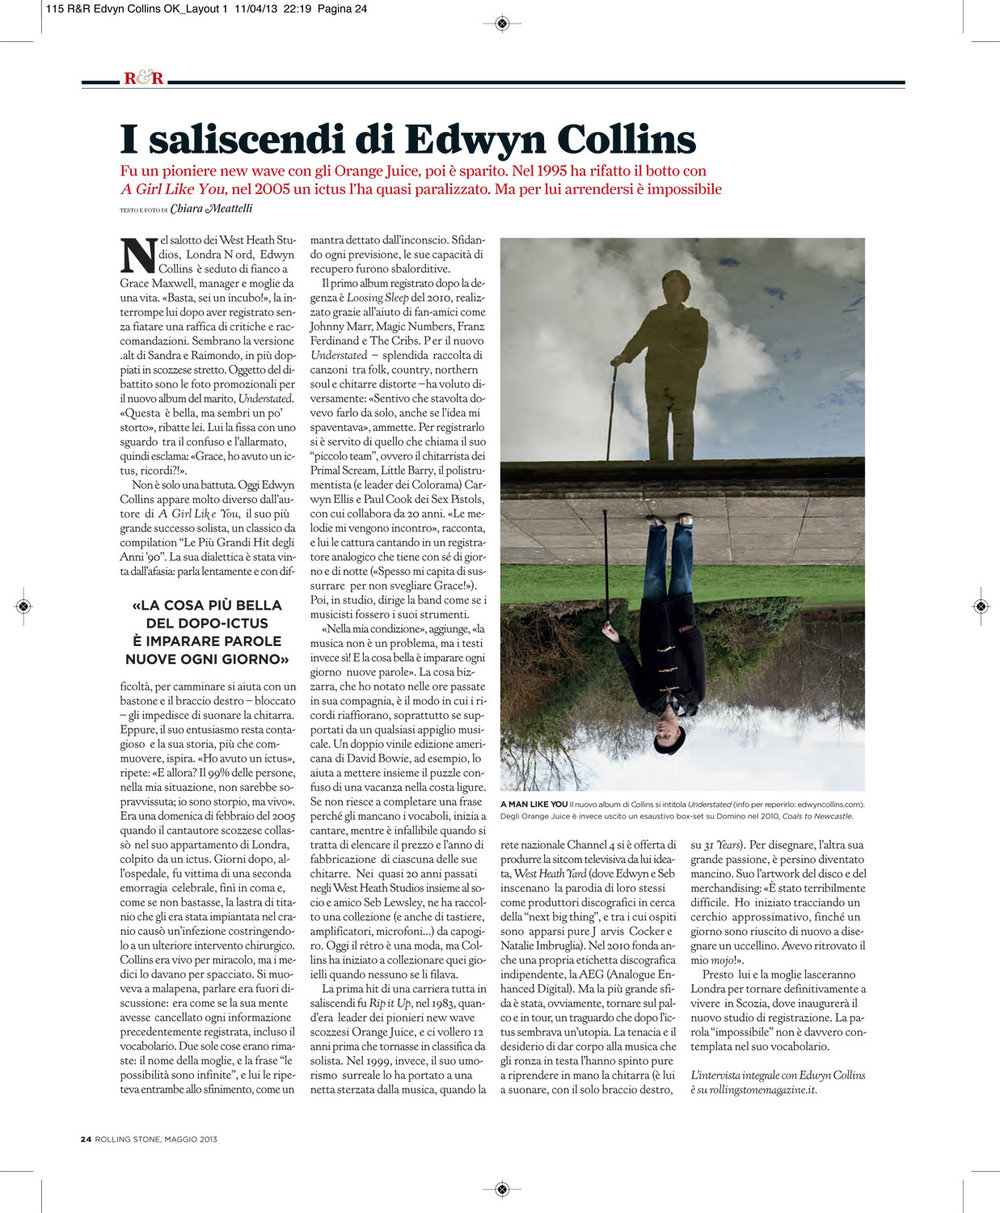 Rolling Stone magazine: Edwyn Collins interview & photo